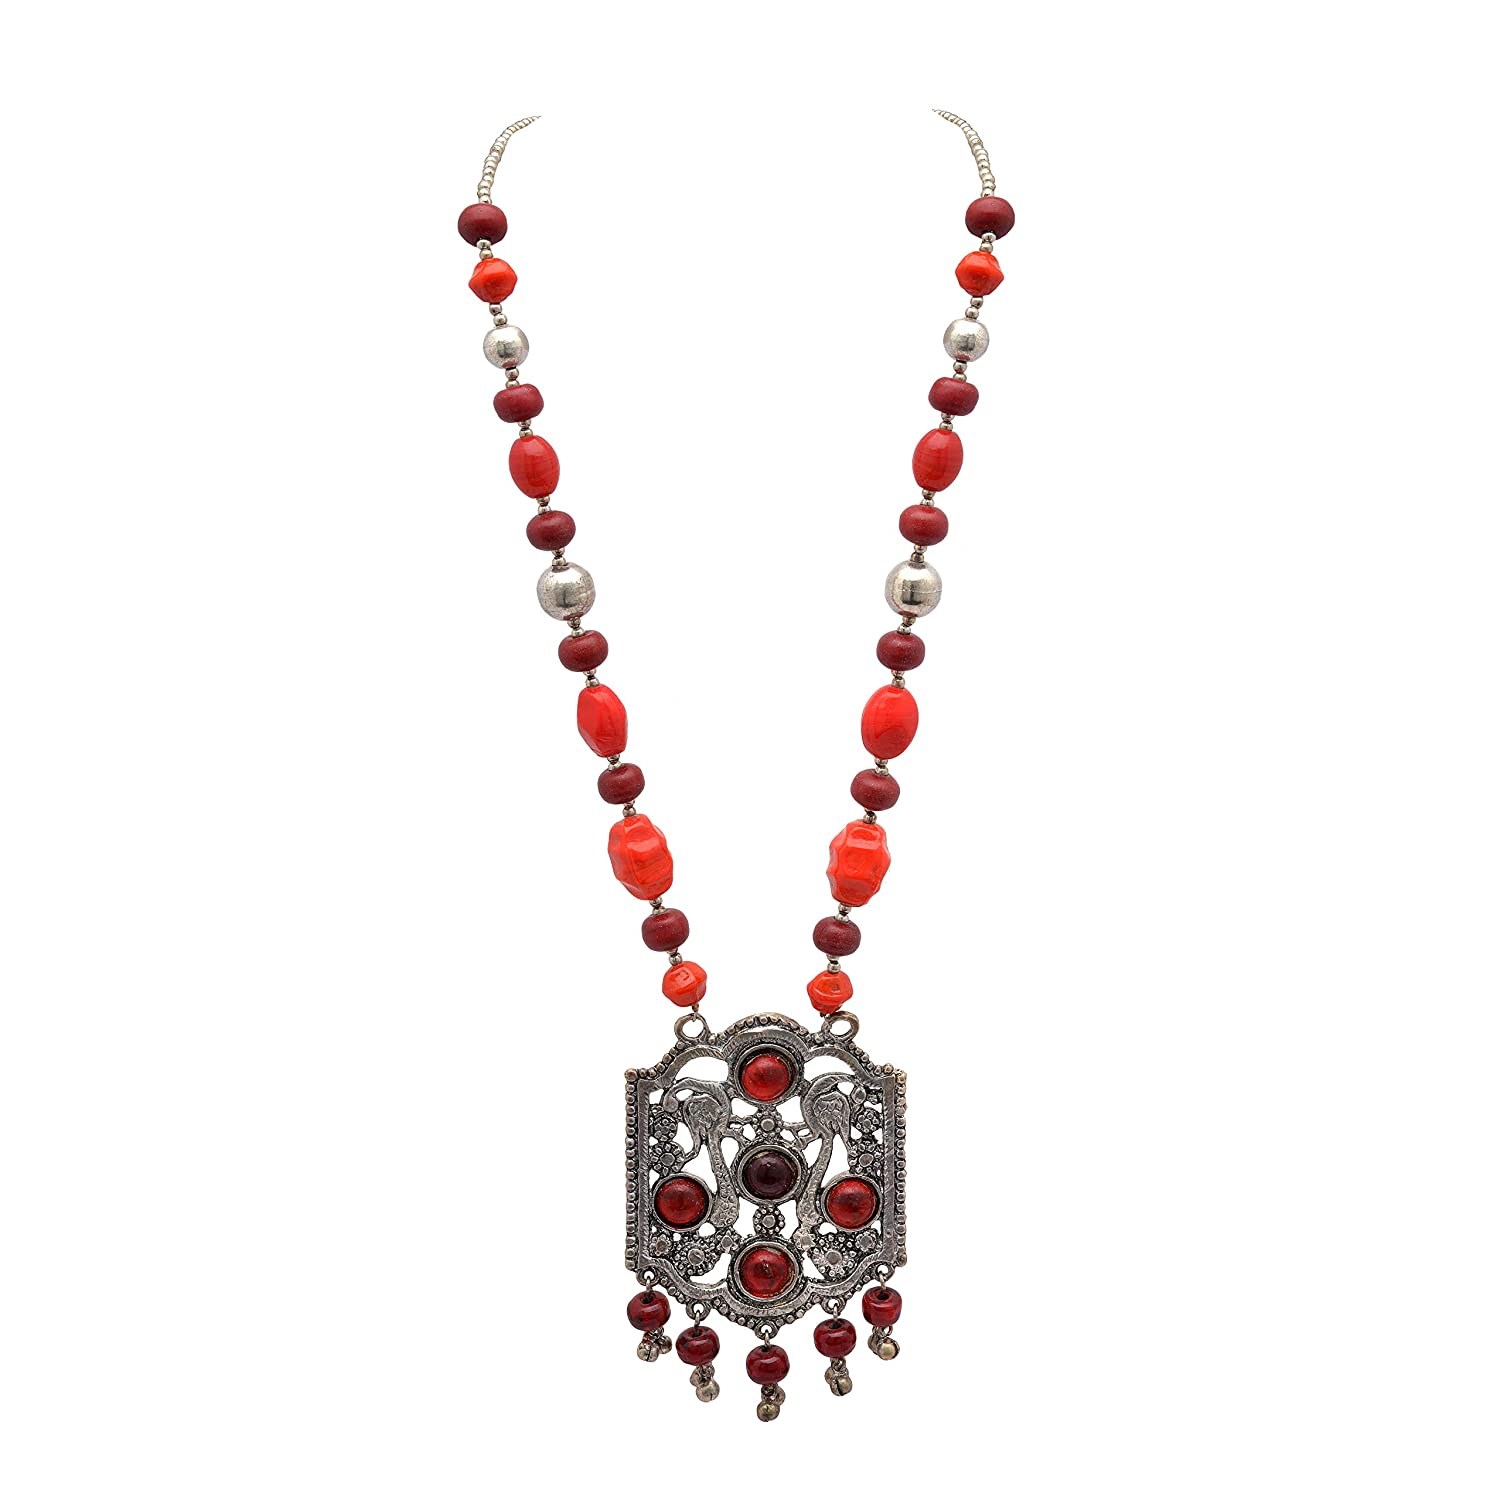 Zephyrr Pendant Necklace Women Stylish Afghani Chunky Oxidized Silver Red Beads for Girls and Women Old India JAN-1736